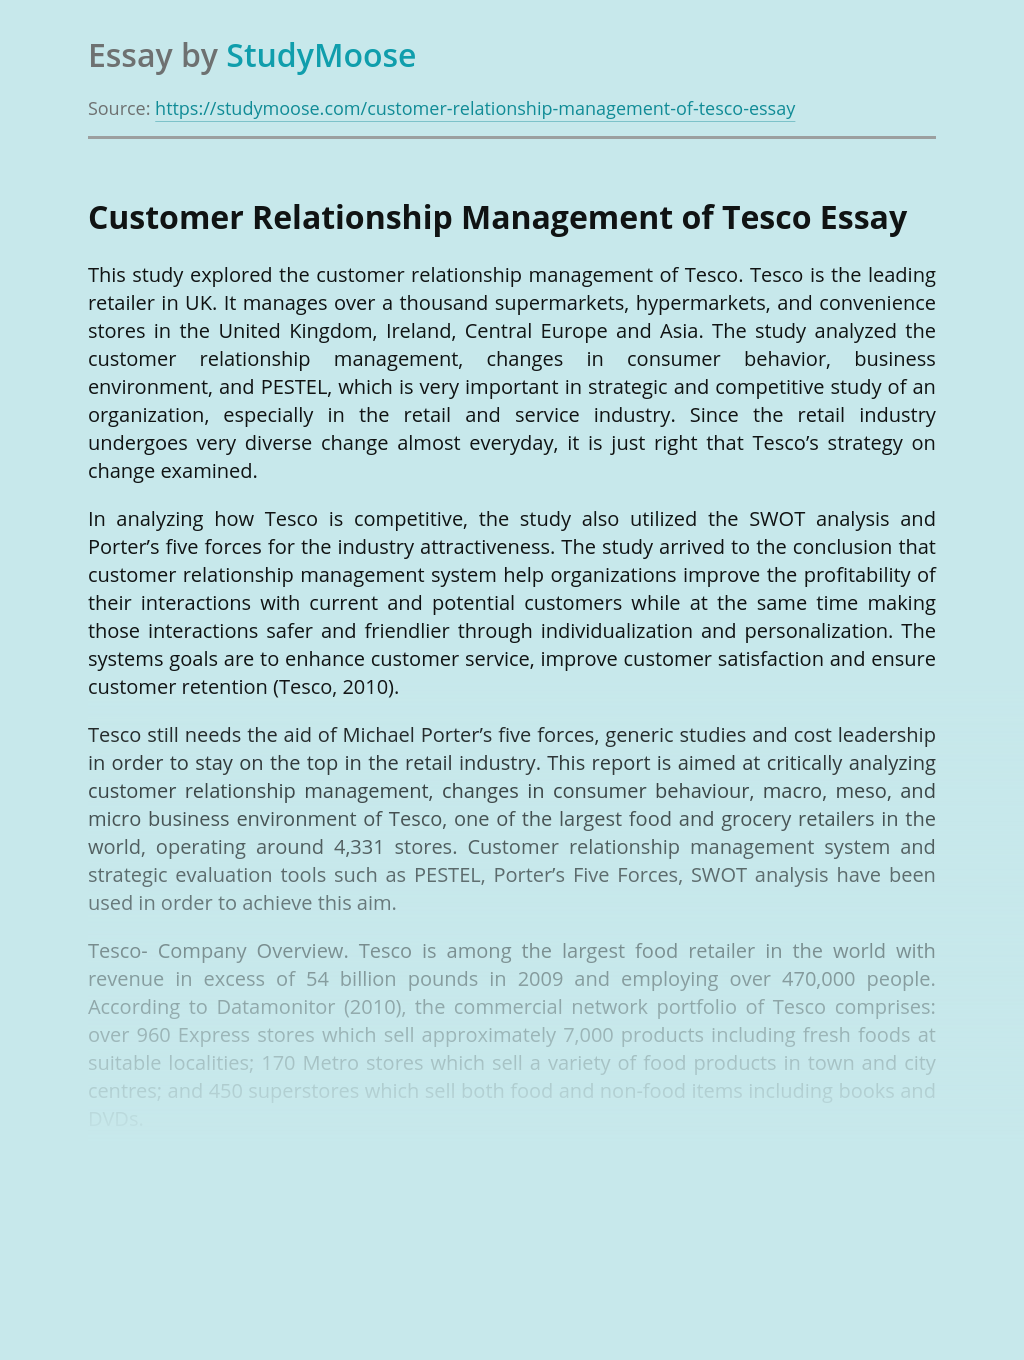 Customer Relationship Management of Tesco